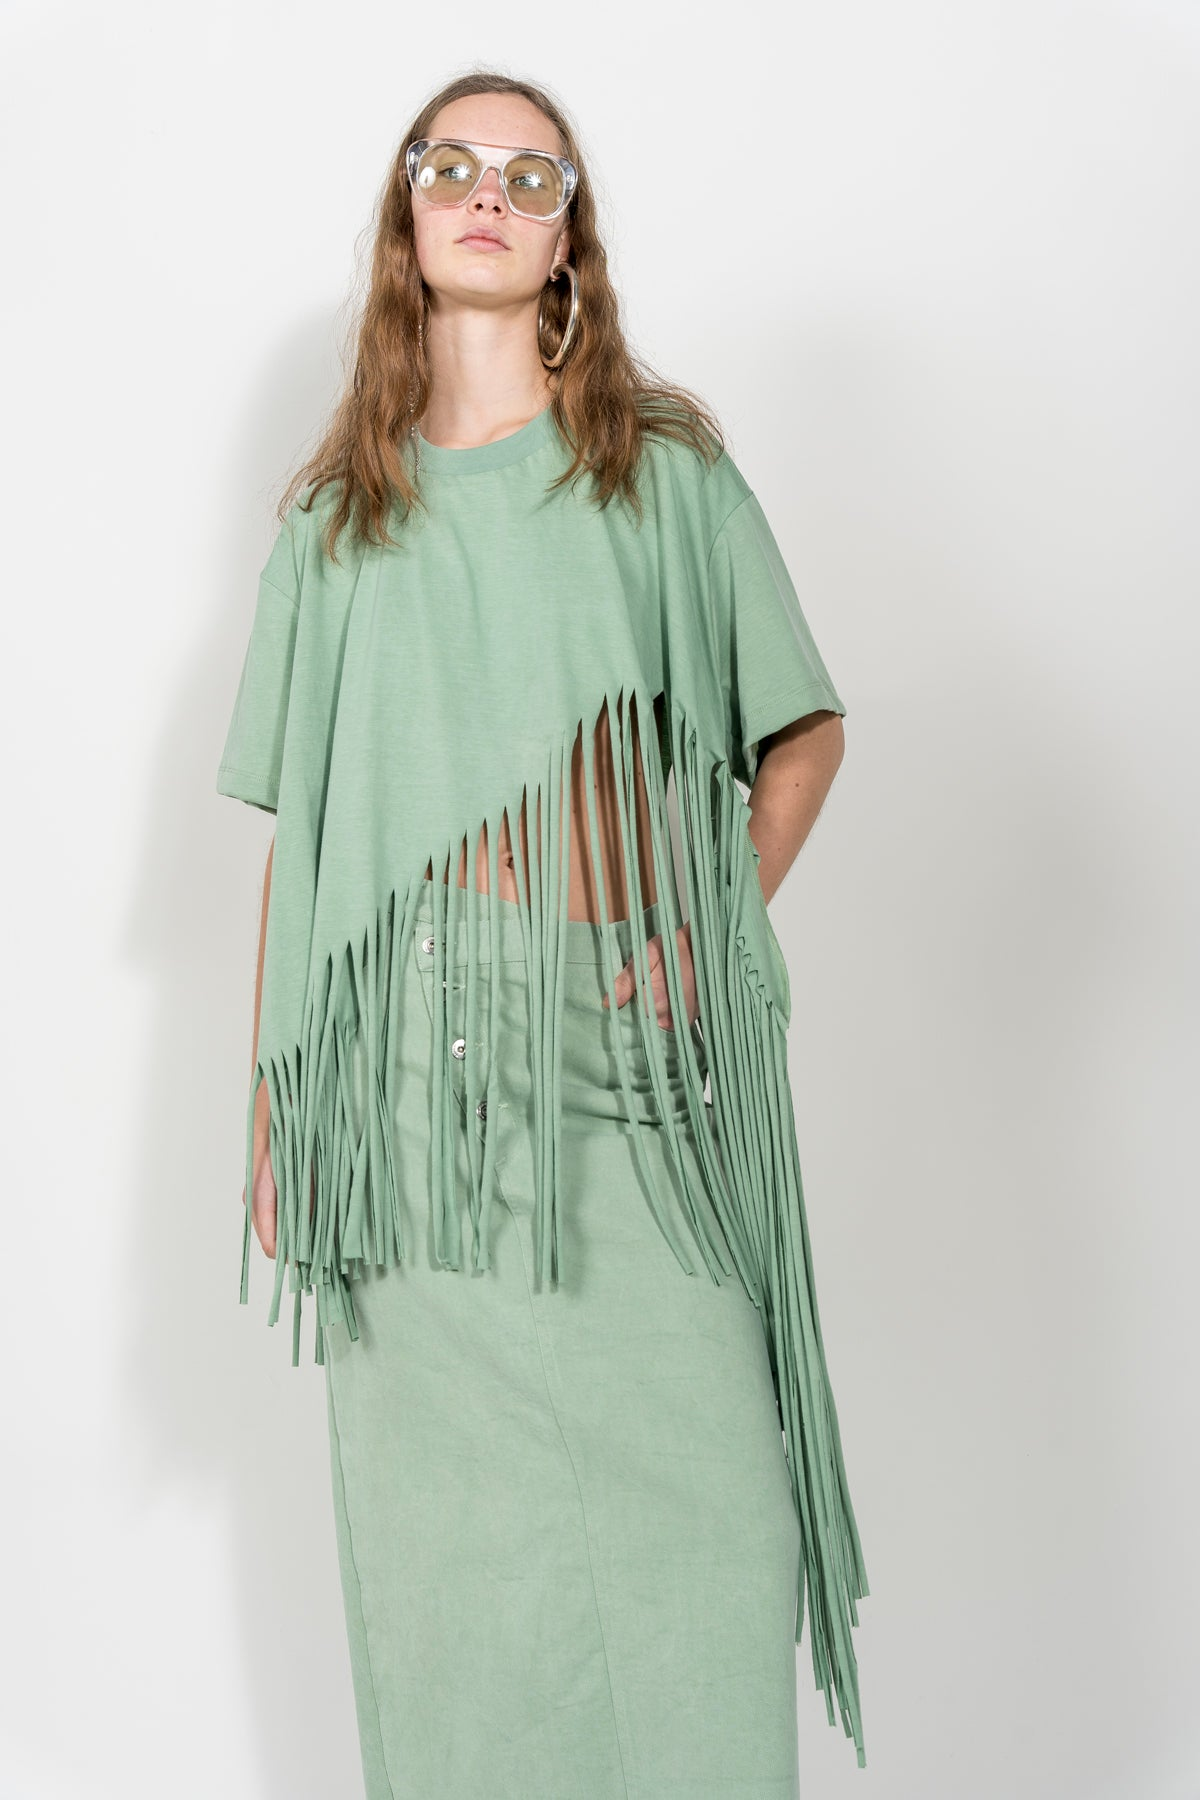 BABY GREEN T-SHIRT WITH FRINGE HEM